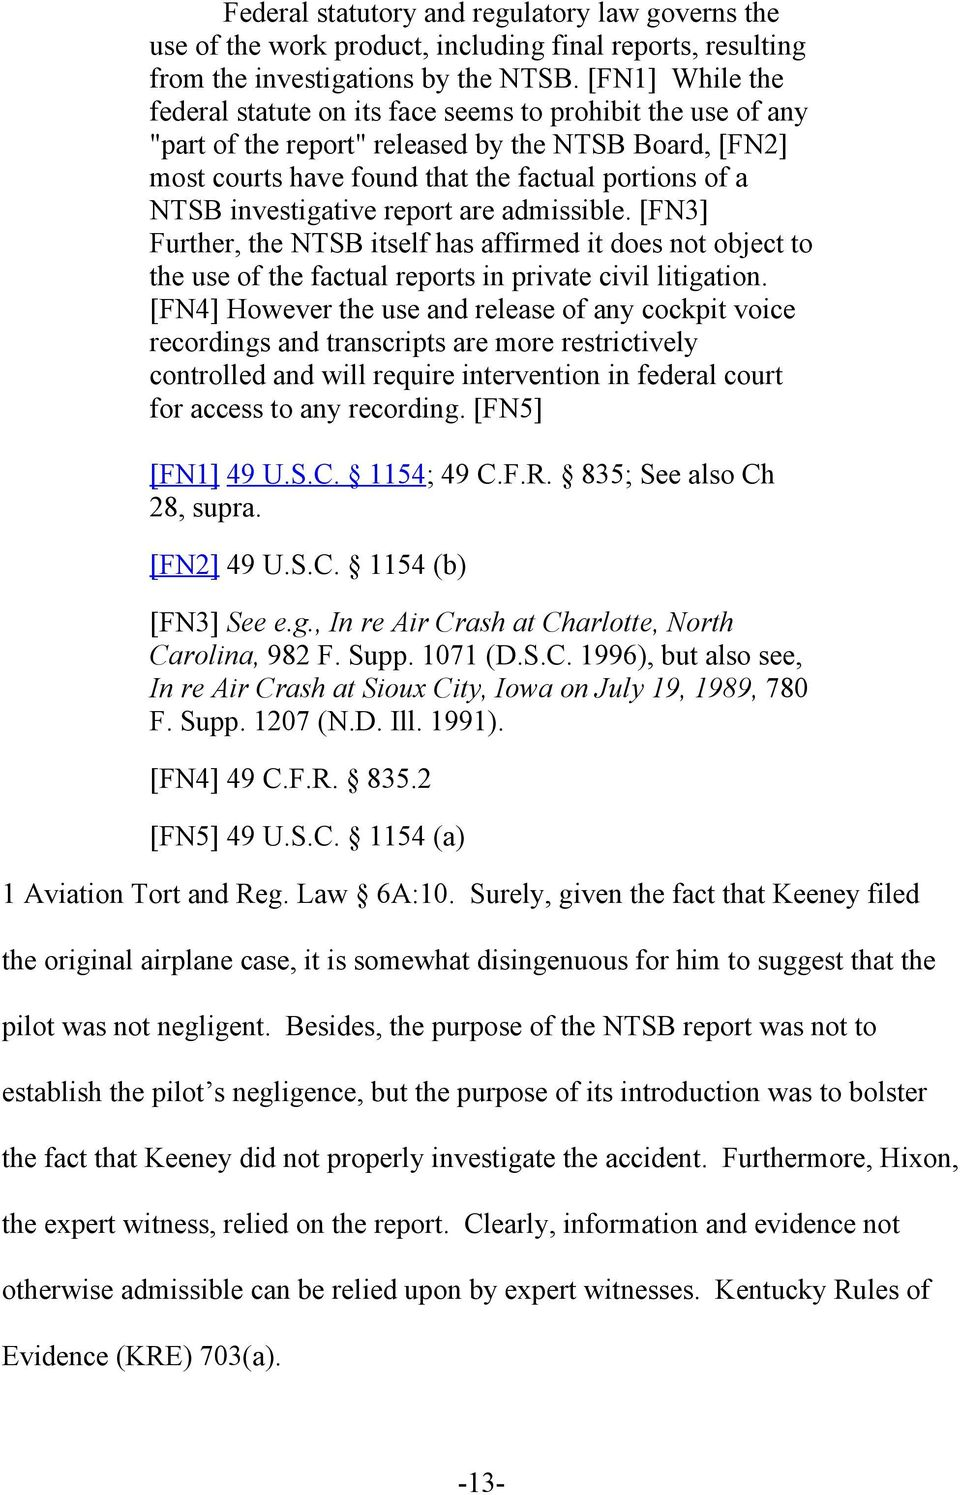 investigative report are admissible. [FN3] Further, the NTSB itself has affirmed it does not object to the use of the factual reports in private civil litigation.